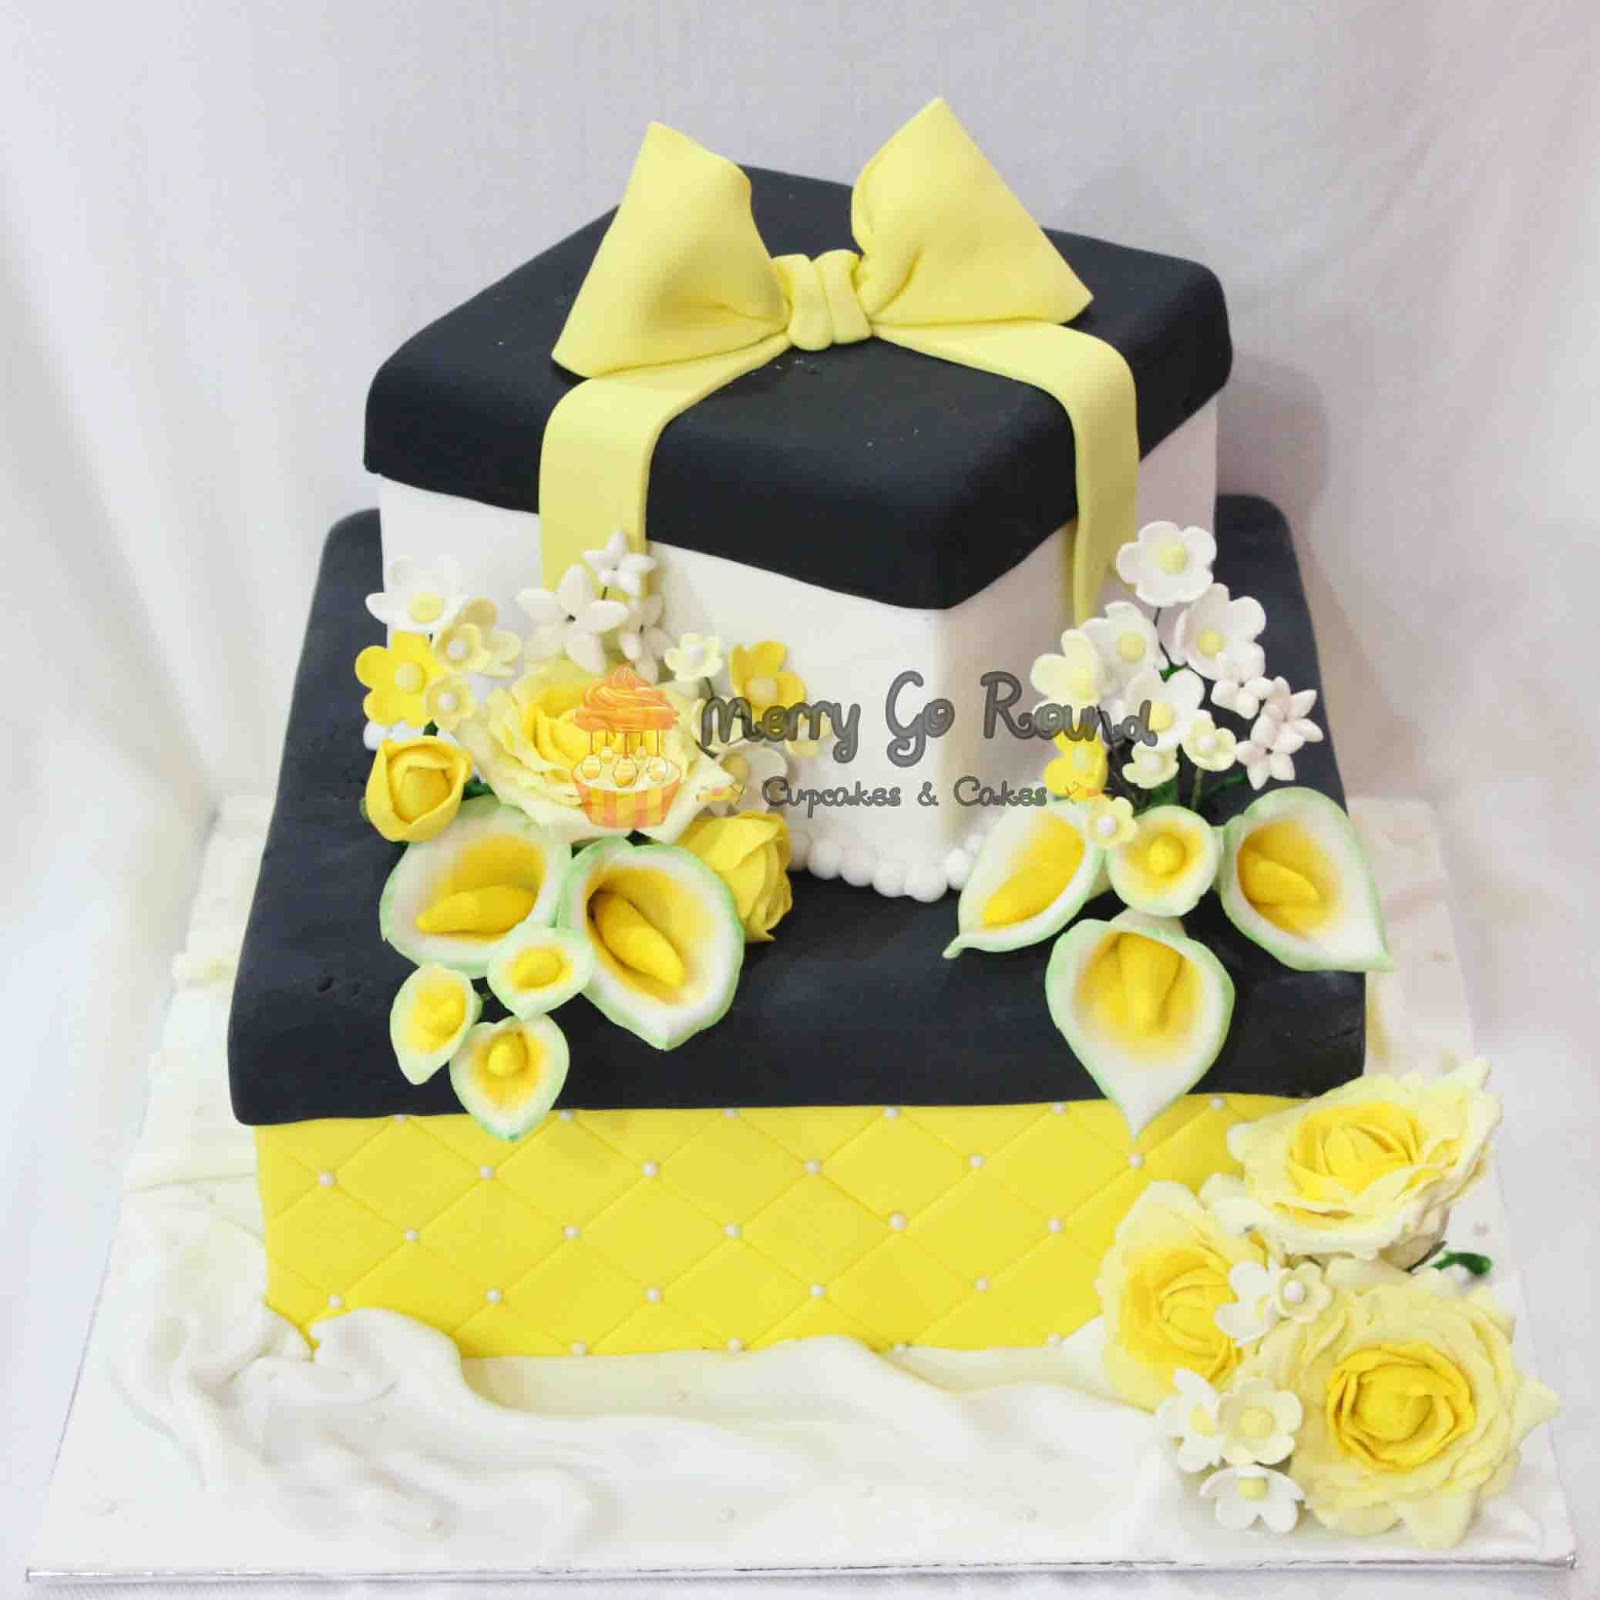 Merry go round cupcakes cakes flower gift box cake flower gift box cake negle Choice Image